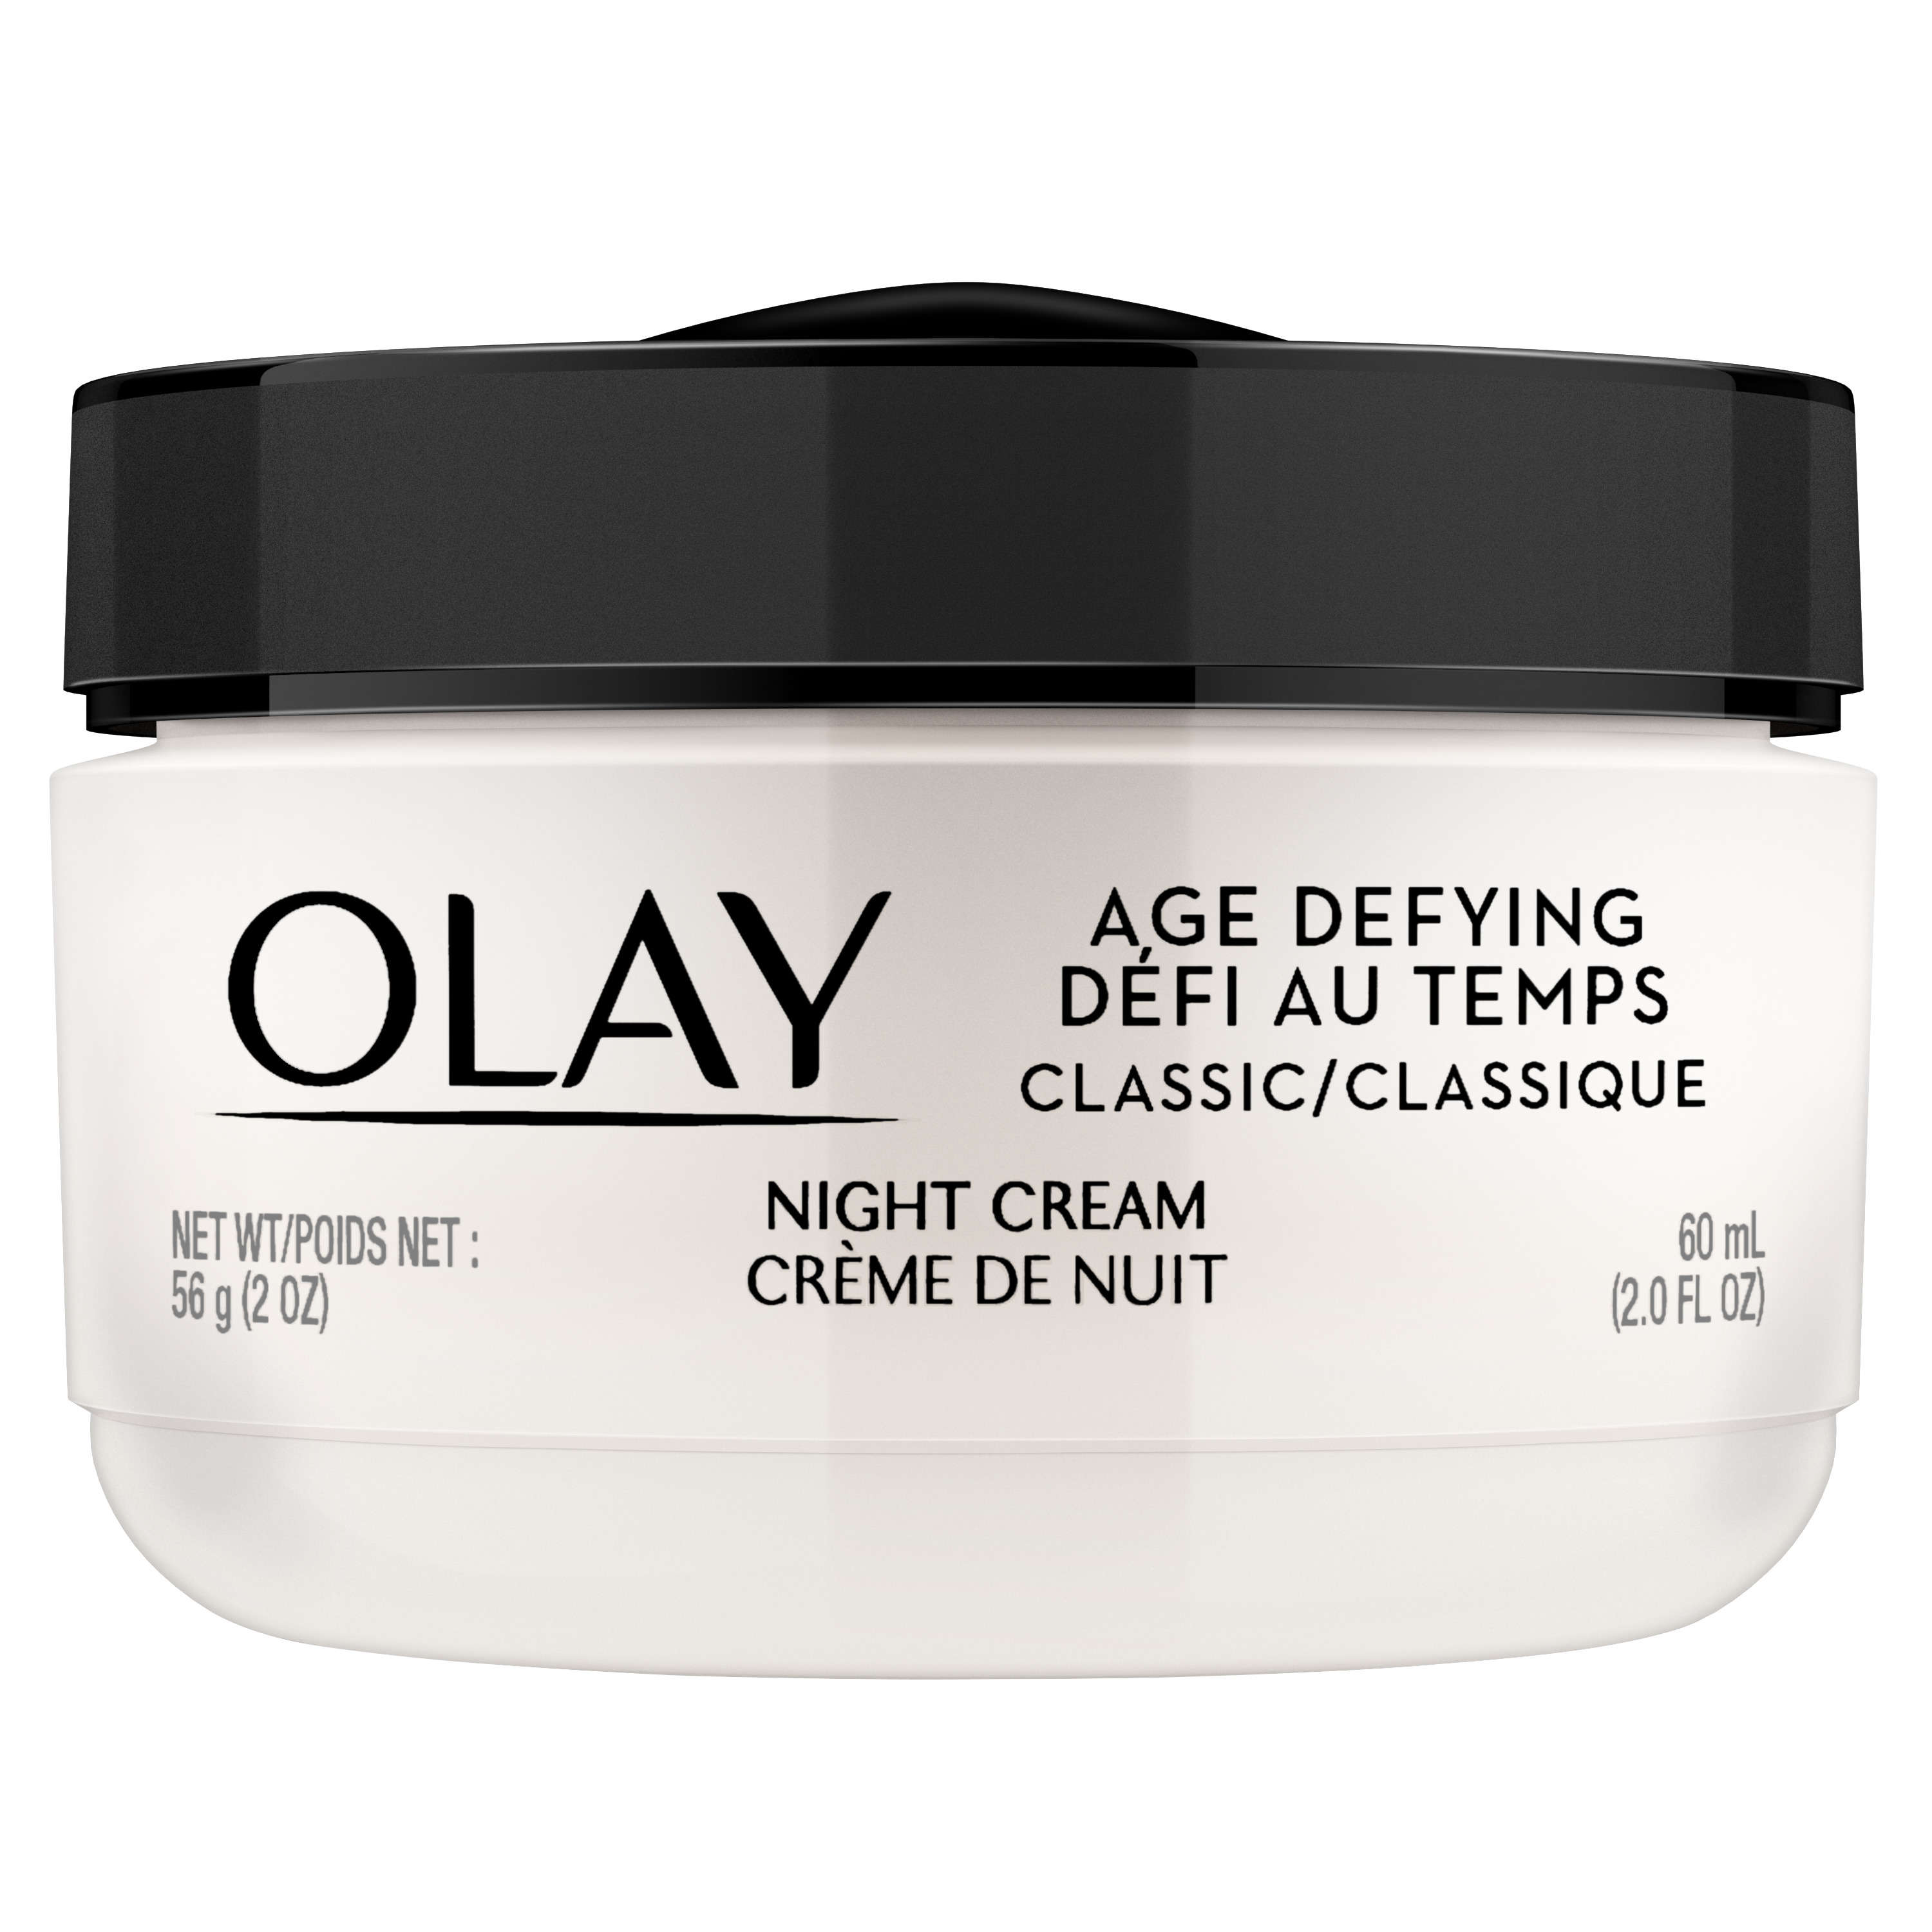 Olay Age Defying Classic Night Cream Face Moisturizer , 2oz